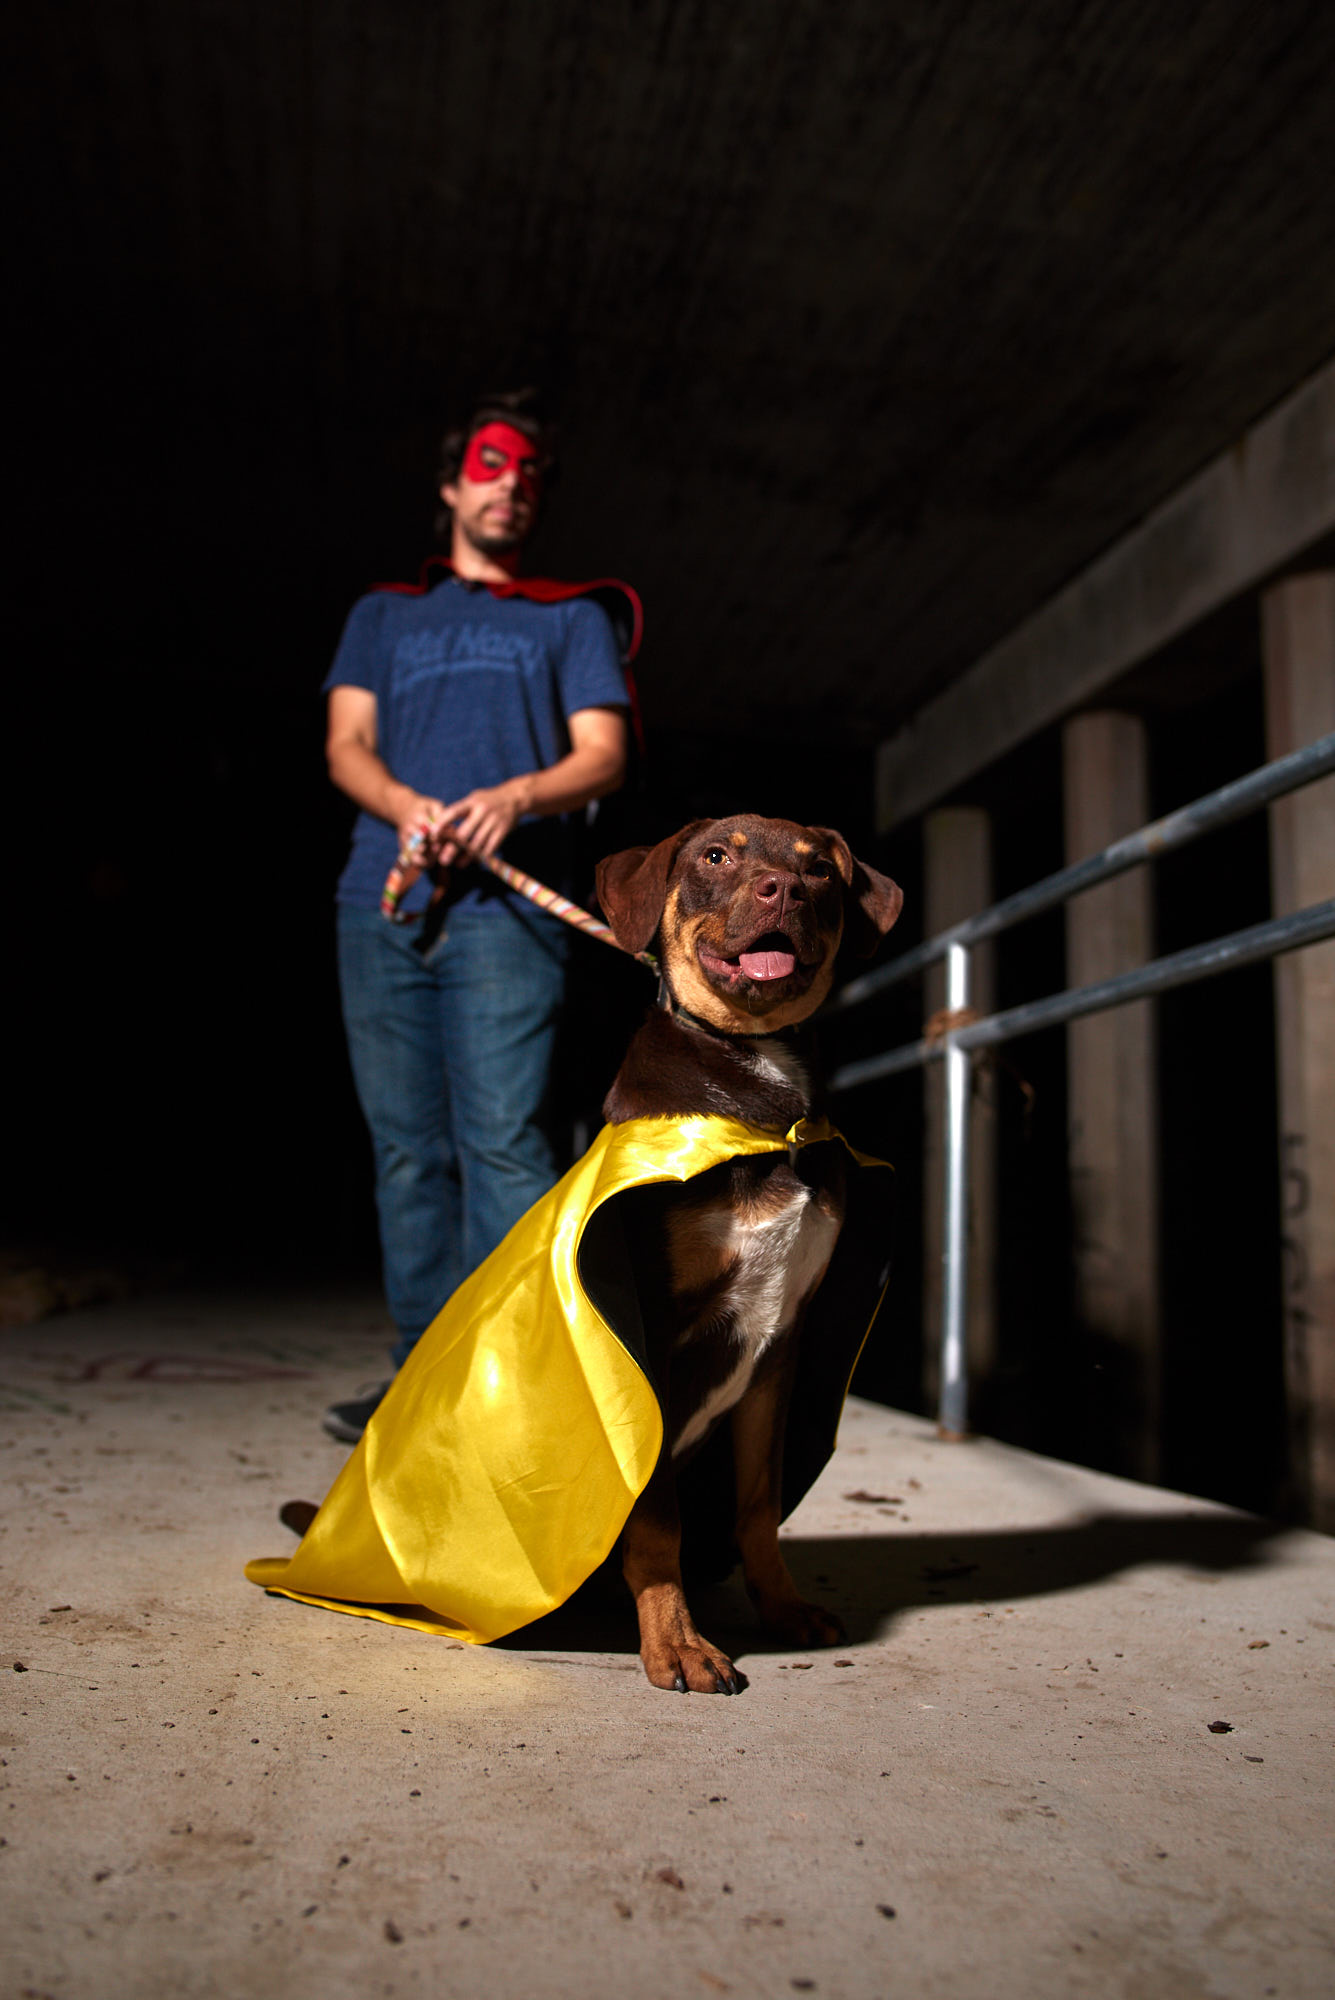 Zooma went super villan for this shoot, but he is really a nice cuddly dog. He posed perfectly for the photoshoot.